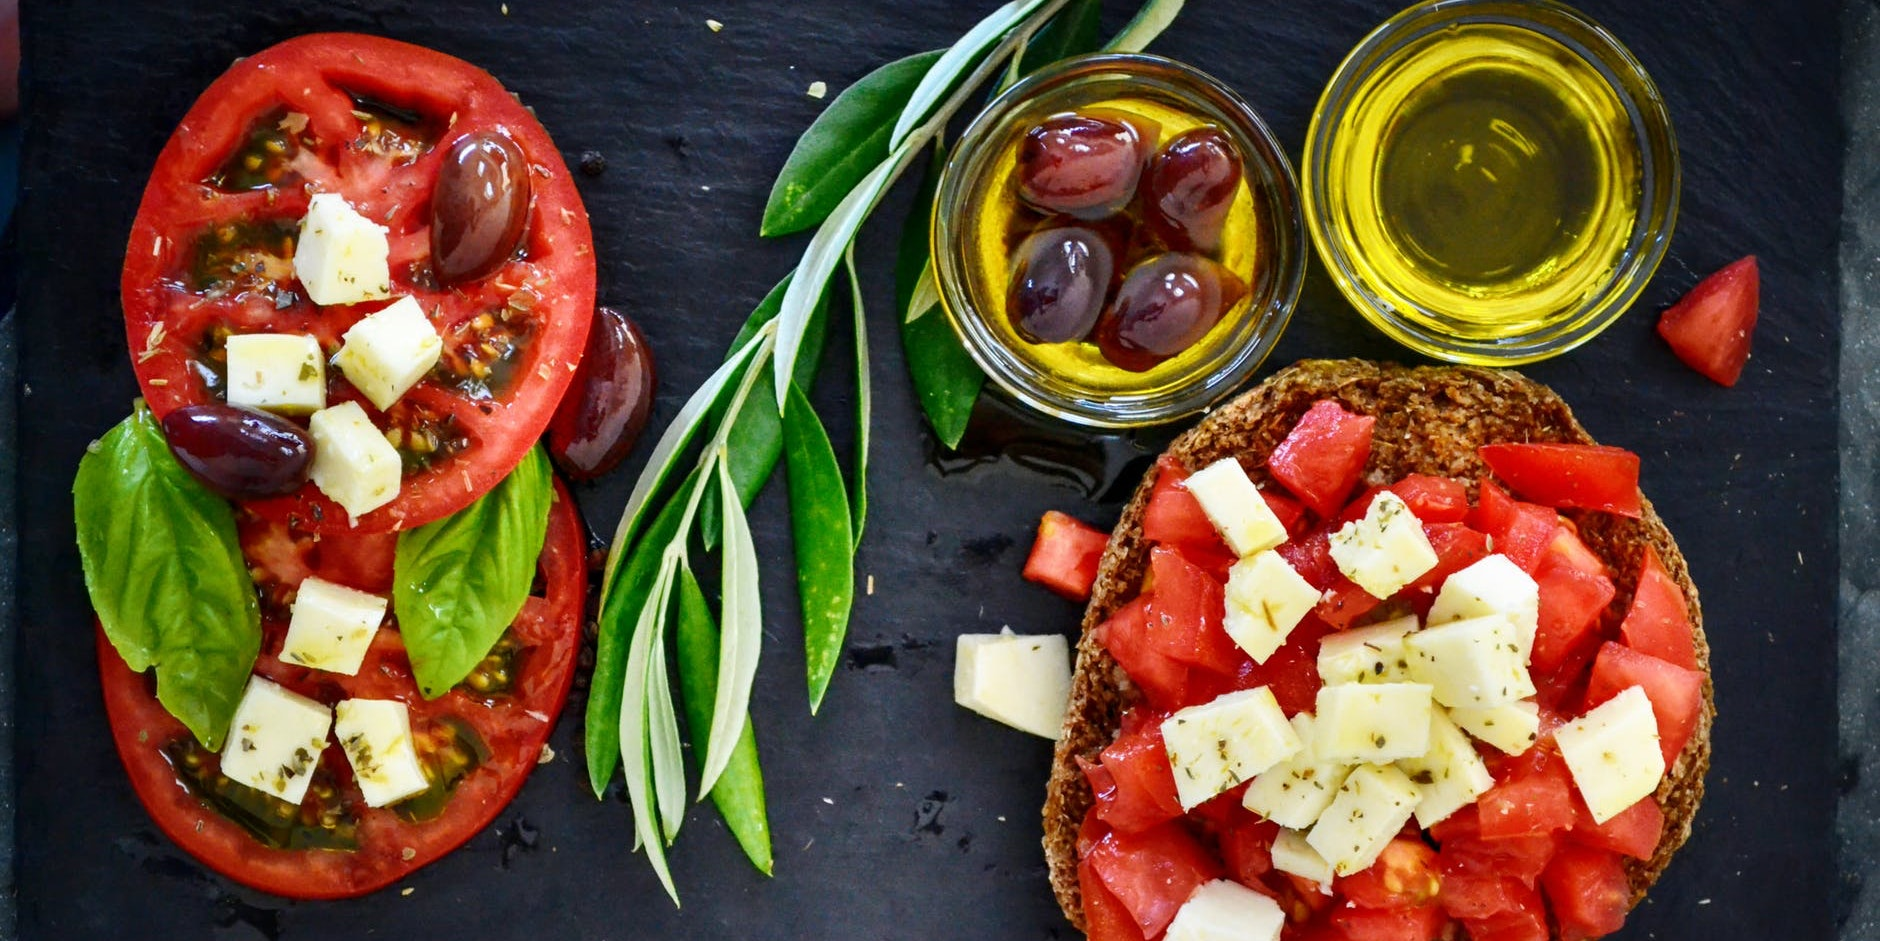 Researchers Identify a Diet That Could Help Fight Depression